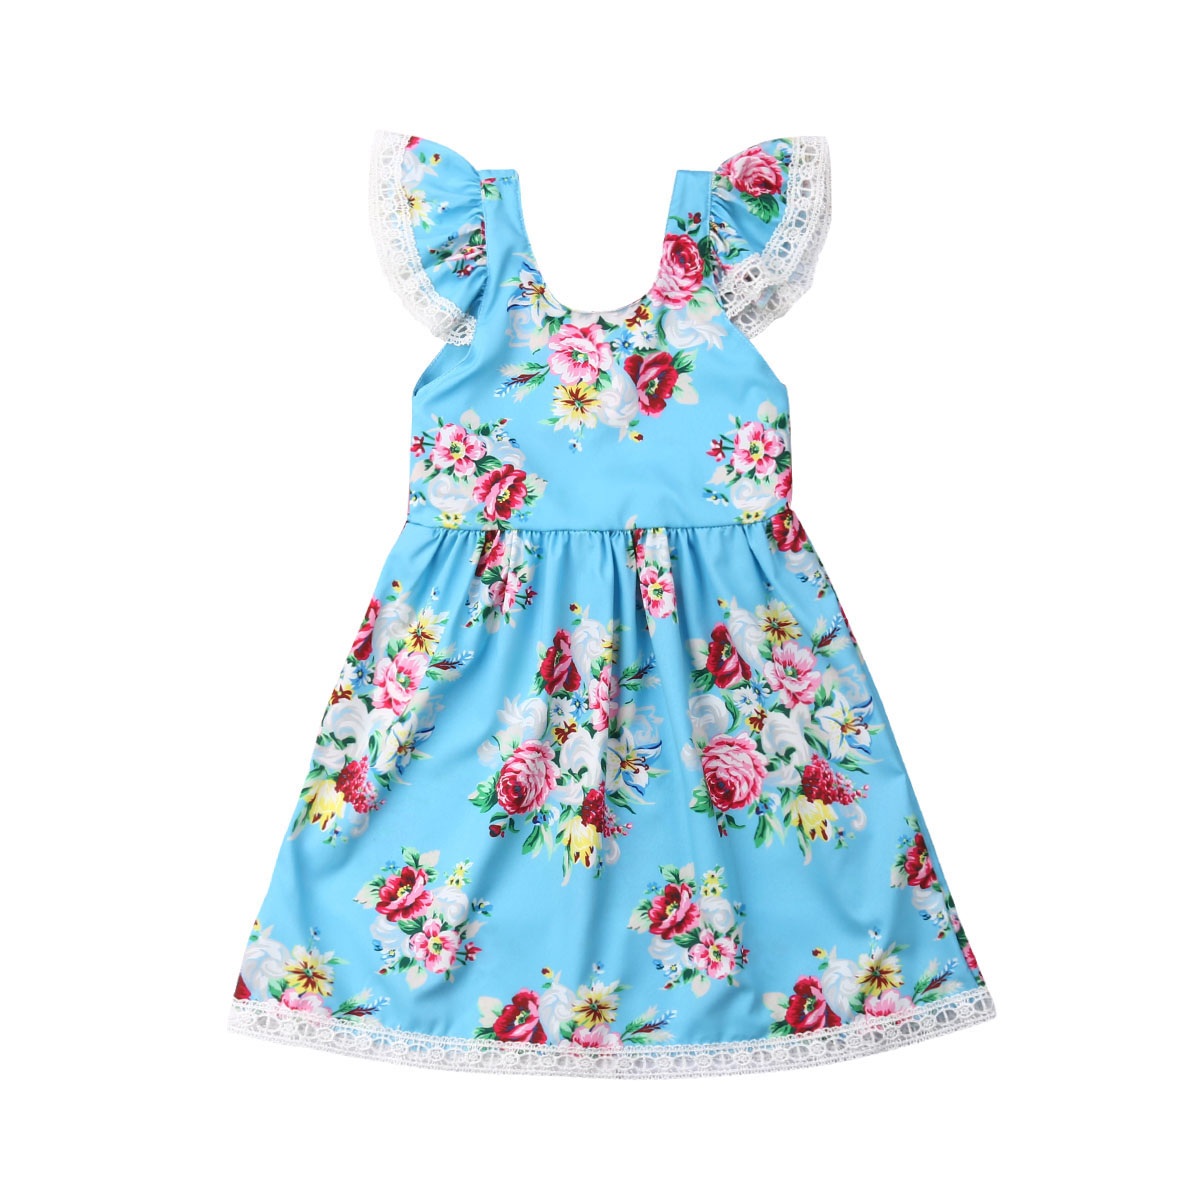 Princess Baby Girls Toddler Party Dress Fly Sleeve Floral Print Bow Pageant Wedding Birthday Summer Cotton Girl Clothes